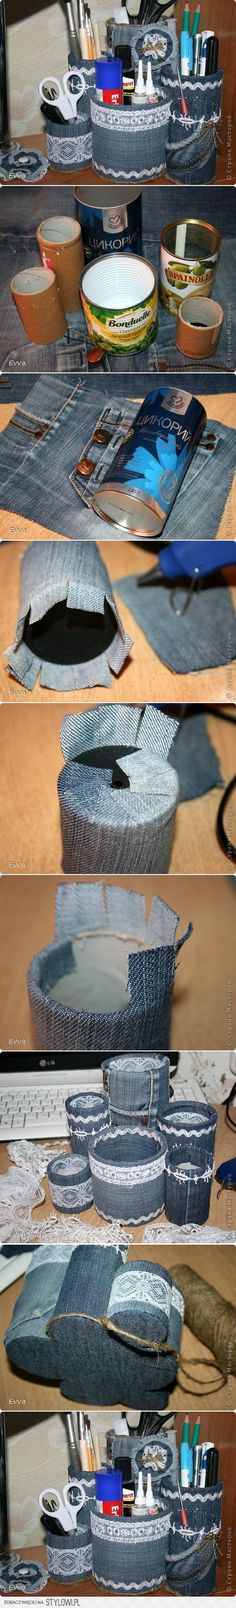 DIY Easy and Quick Organizer DIY Projects | UsefulDIY.com. denim and lace!